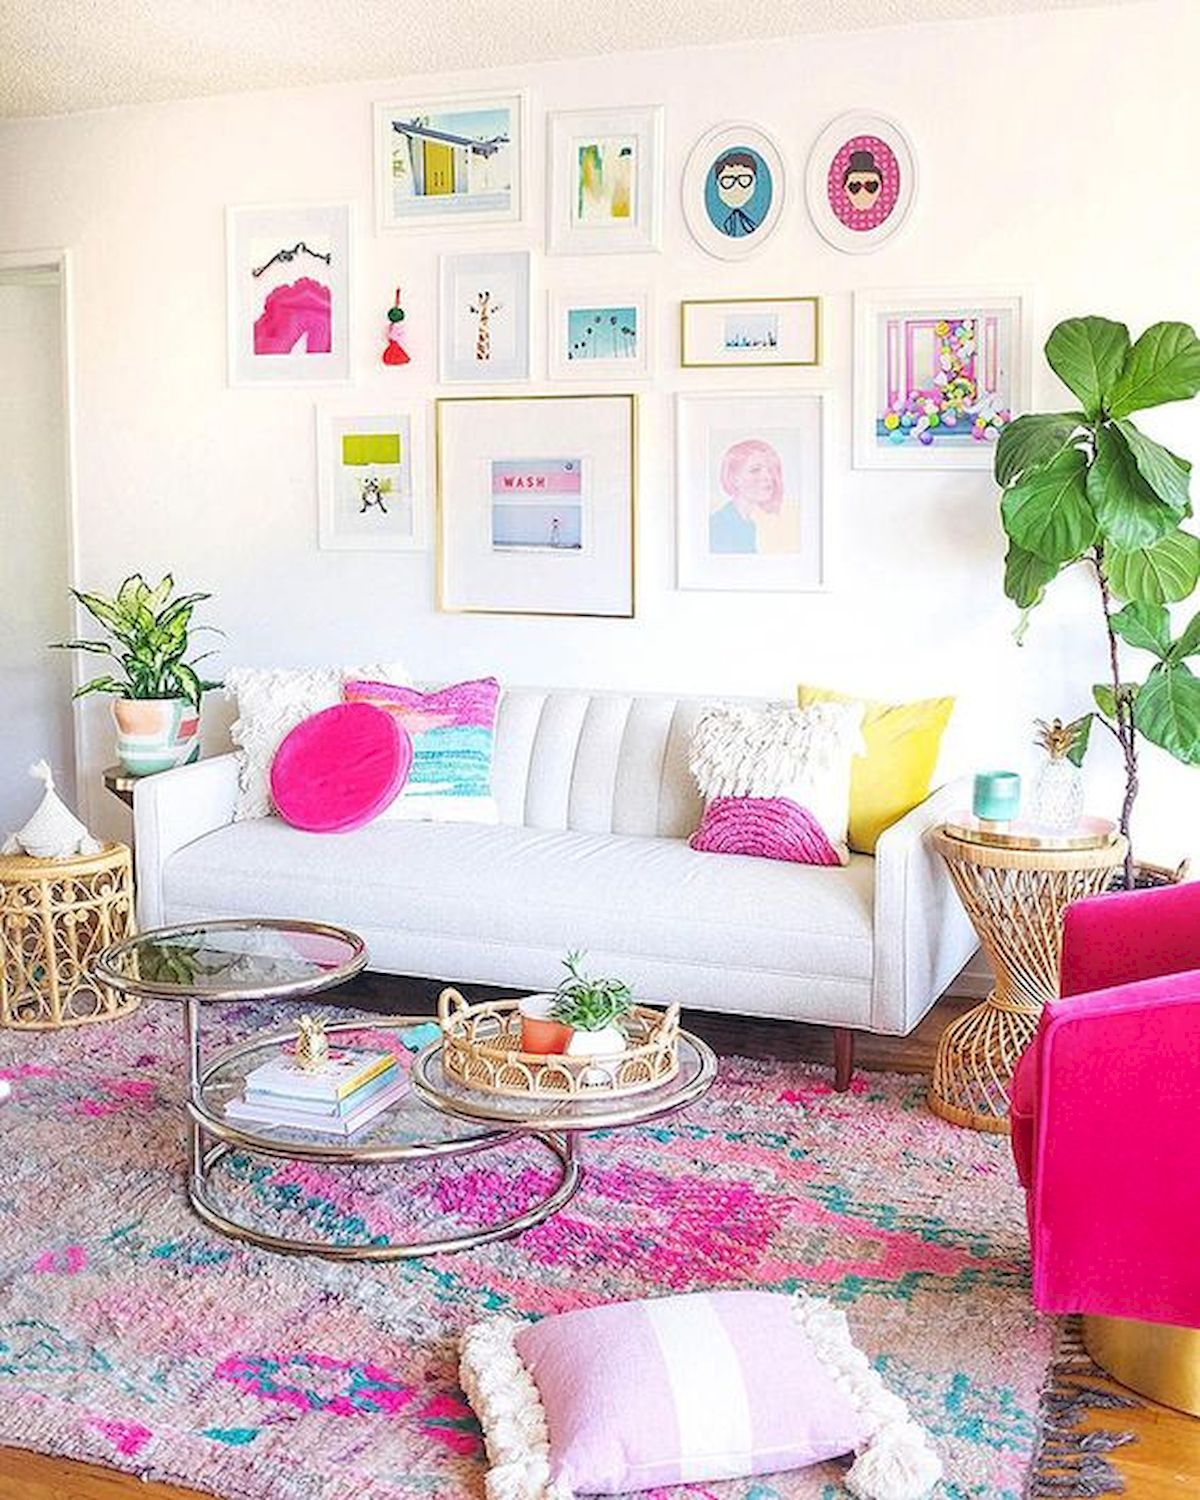 70 Fantastic Summer Living Room Decor Ideas -   13 room decor Summer inspiration ideas